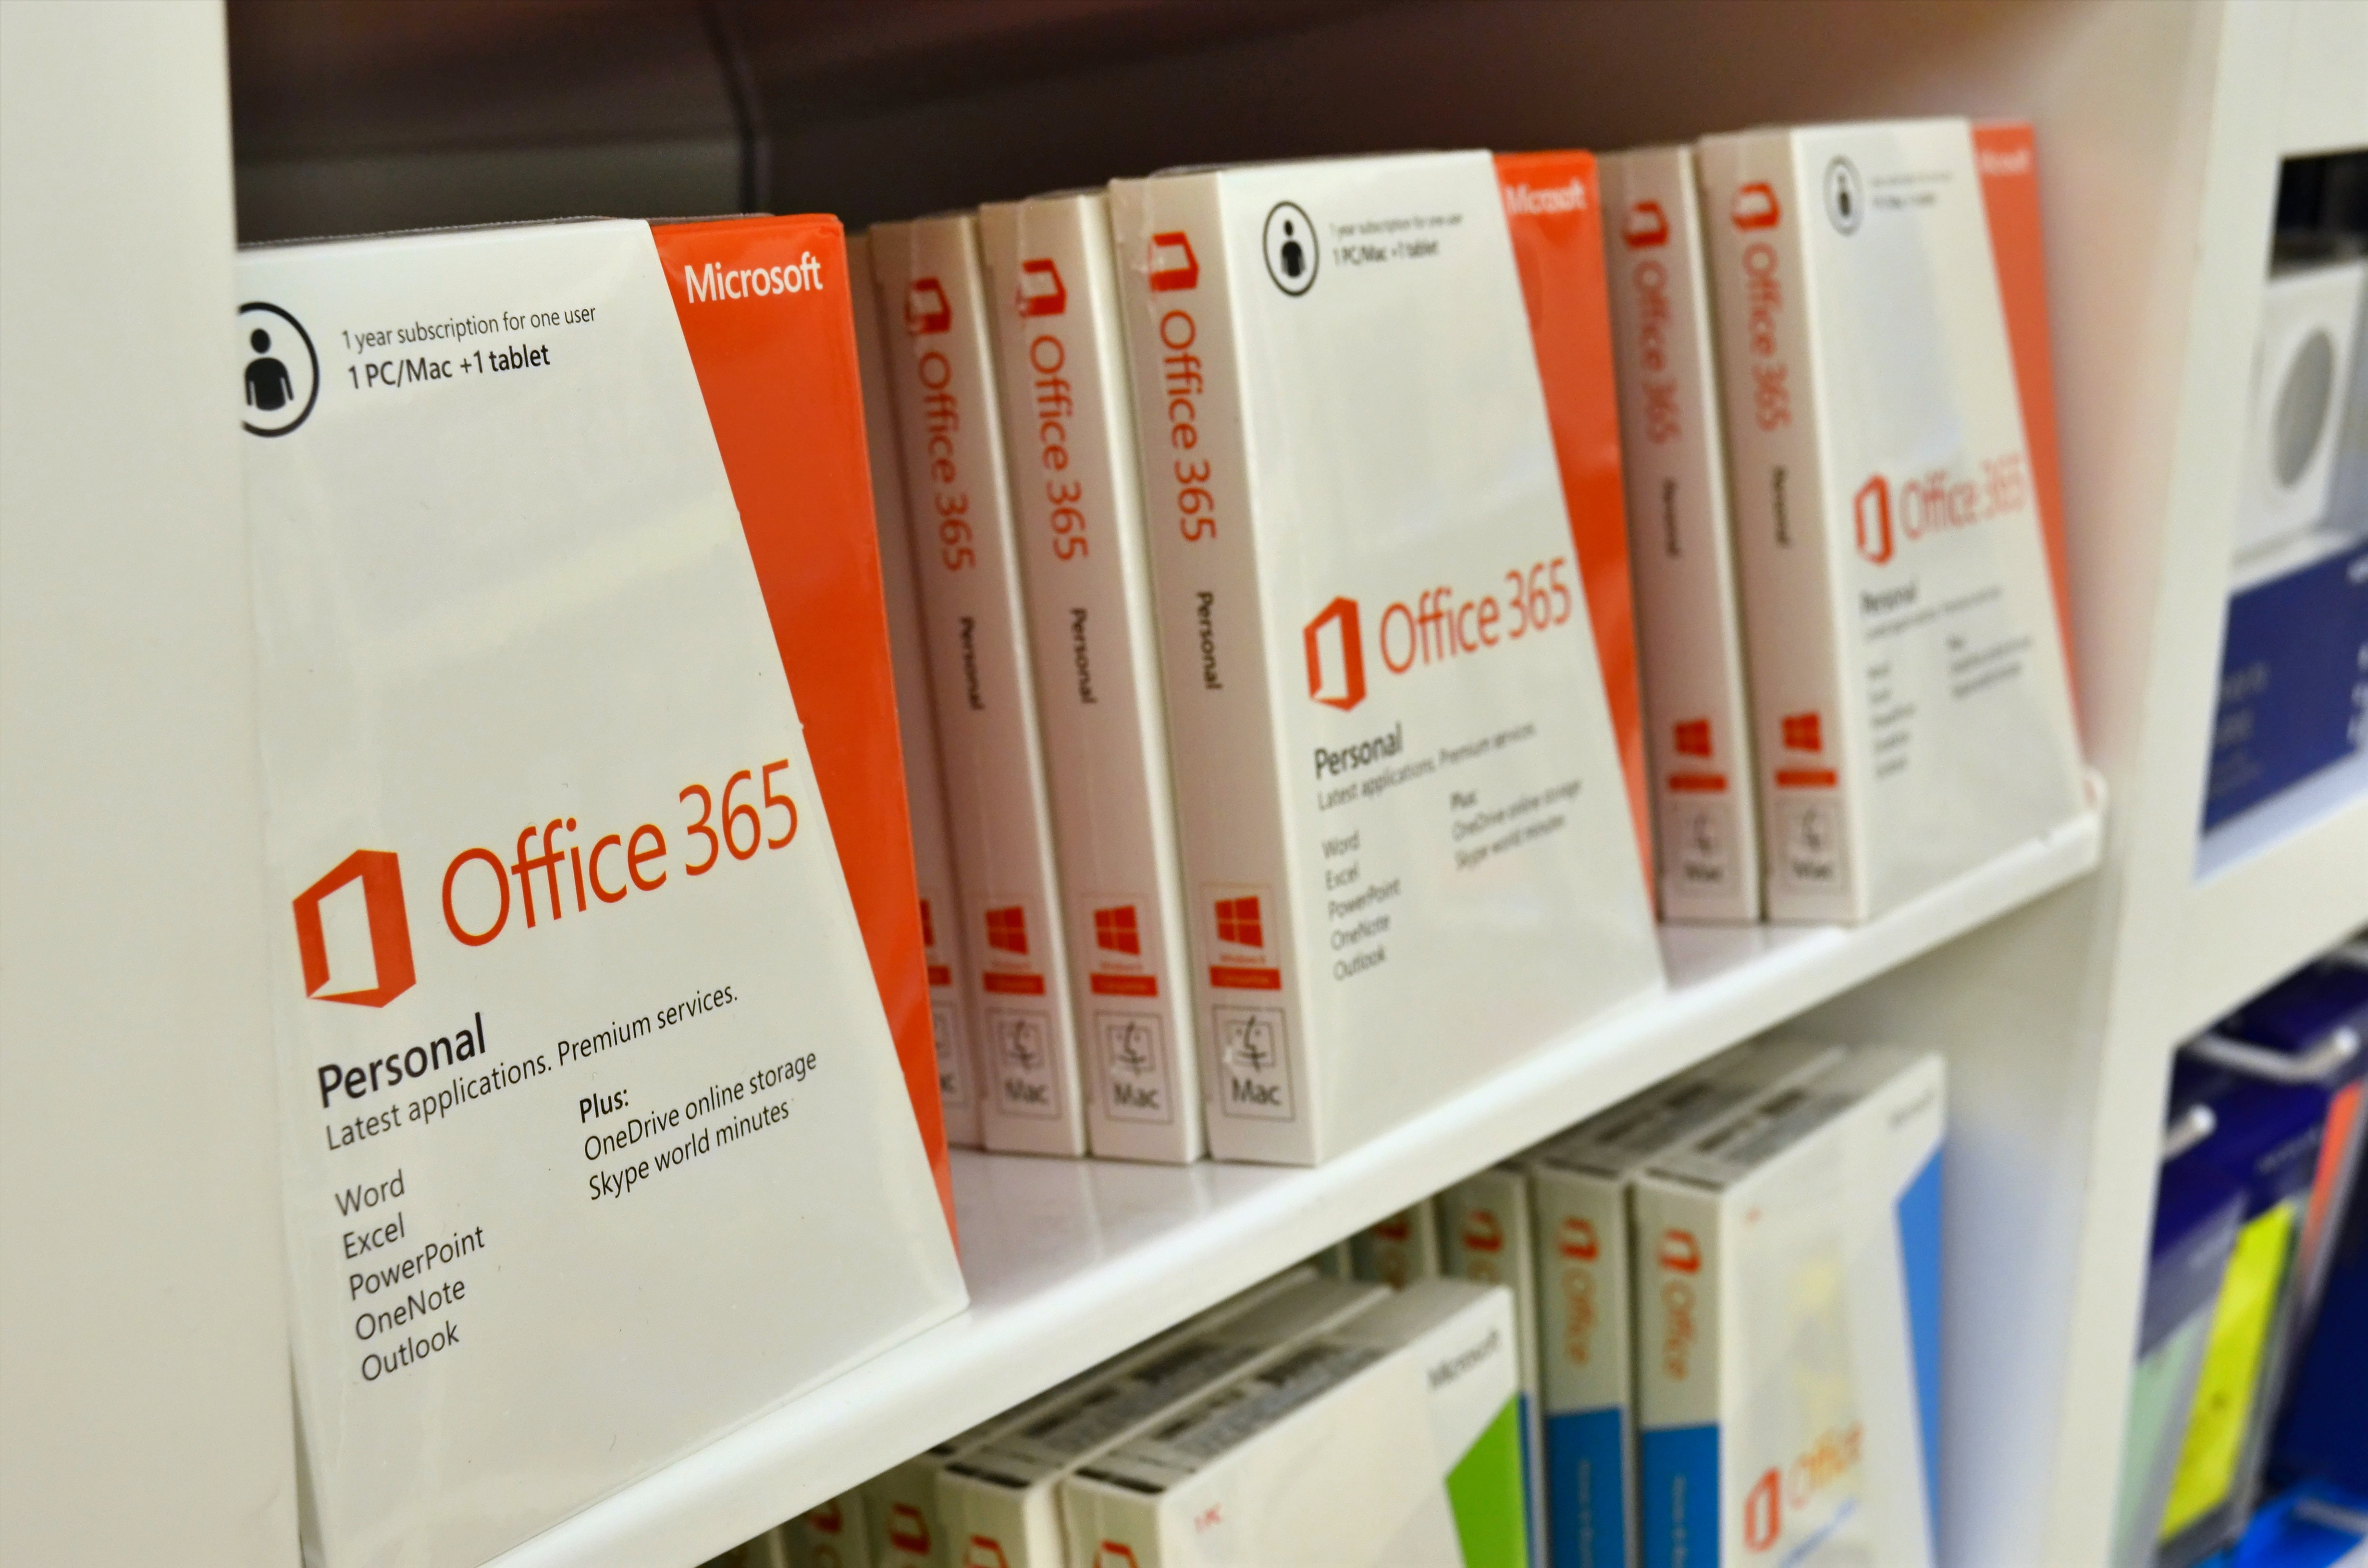 Office 365 retail pack